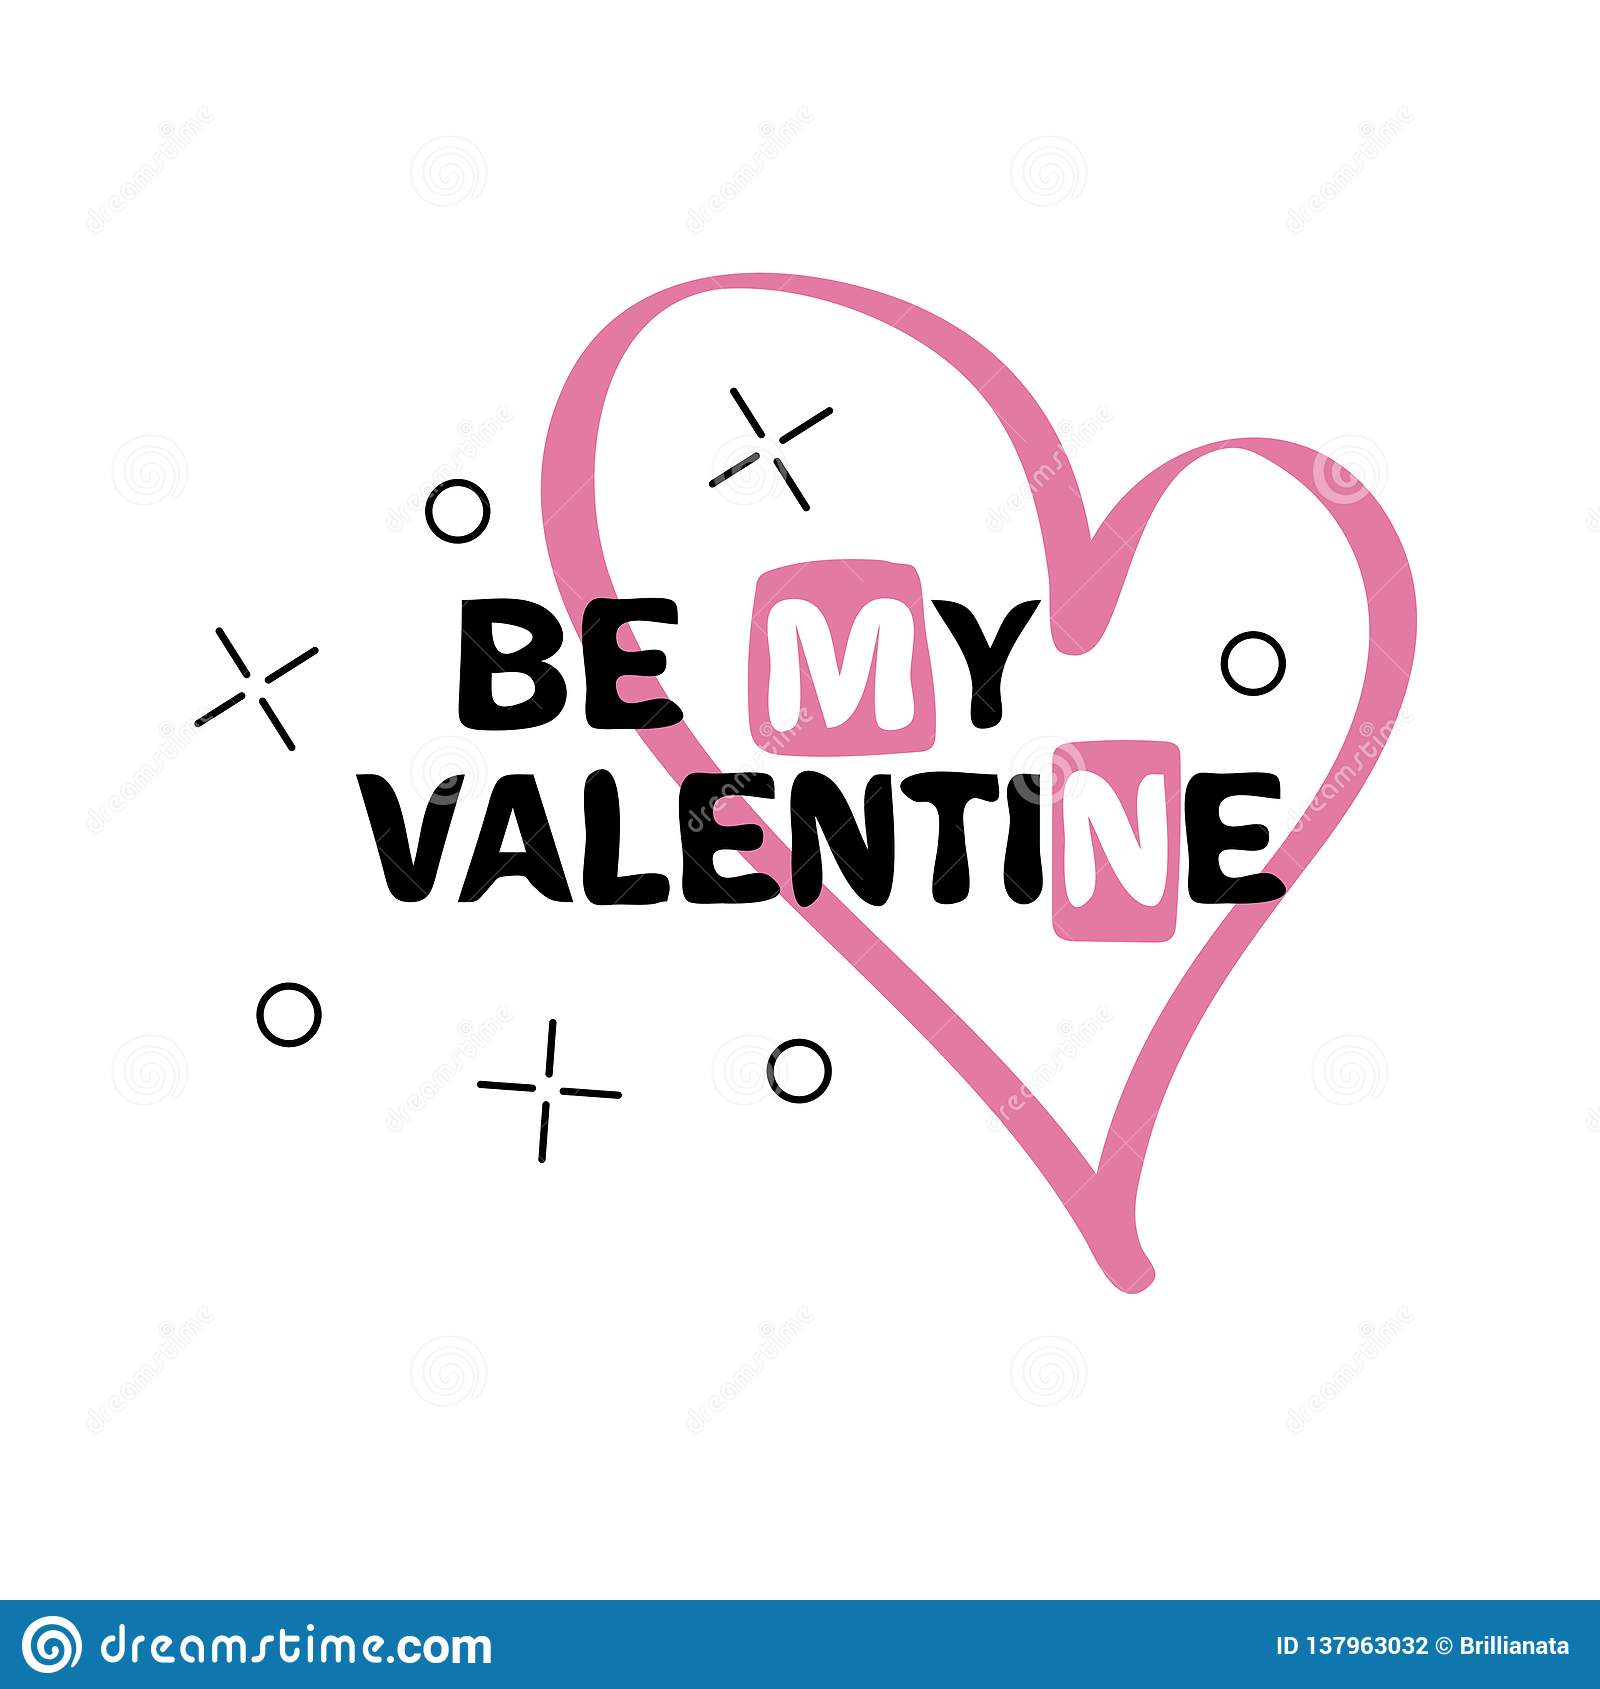 Be my Valentine Hand drawn creative lettering